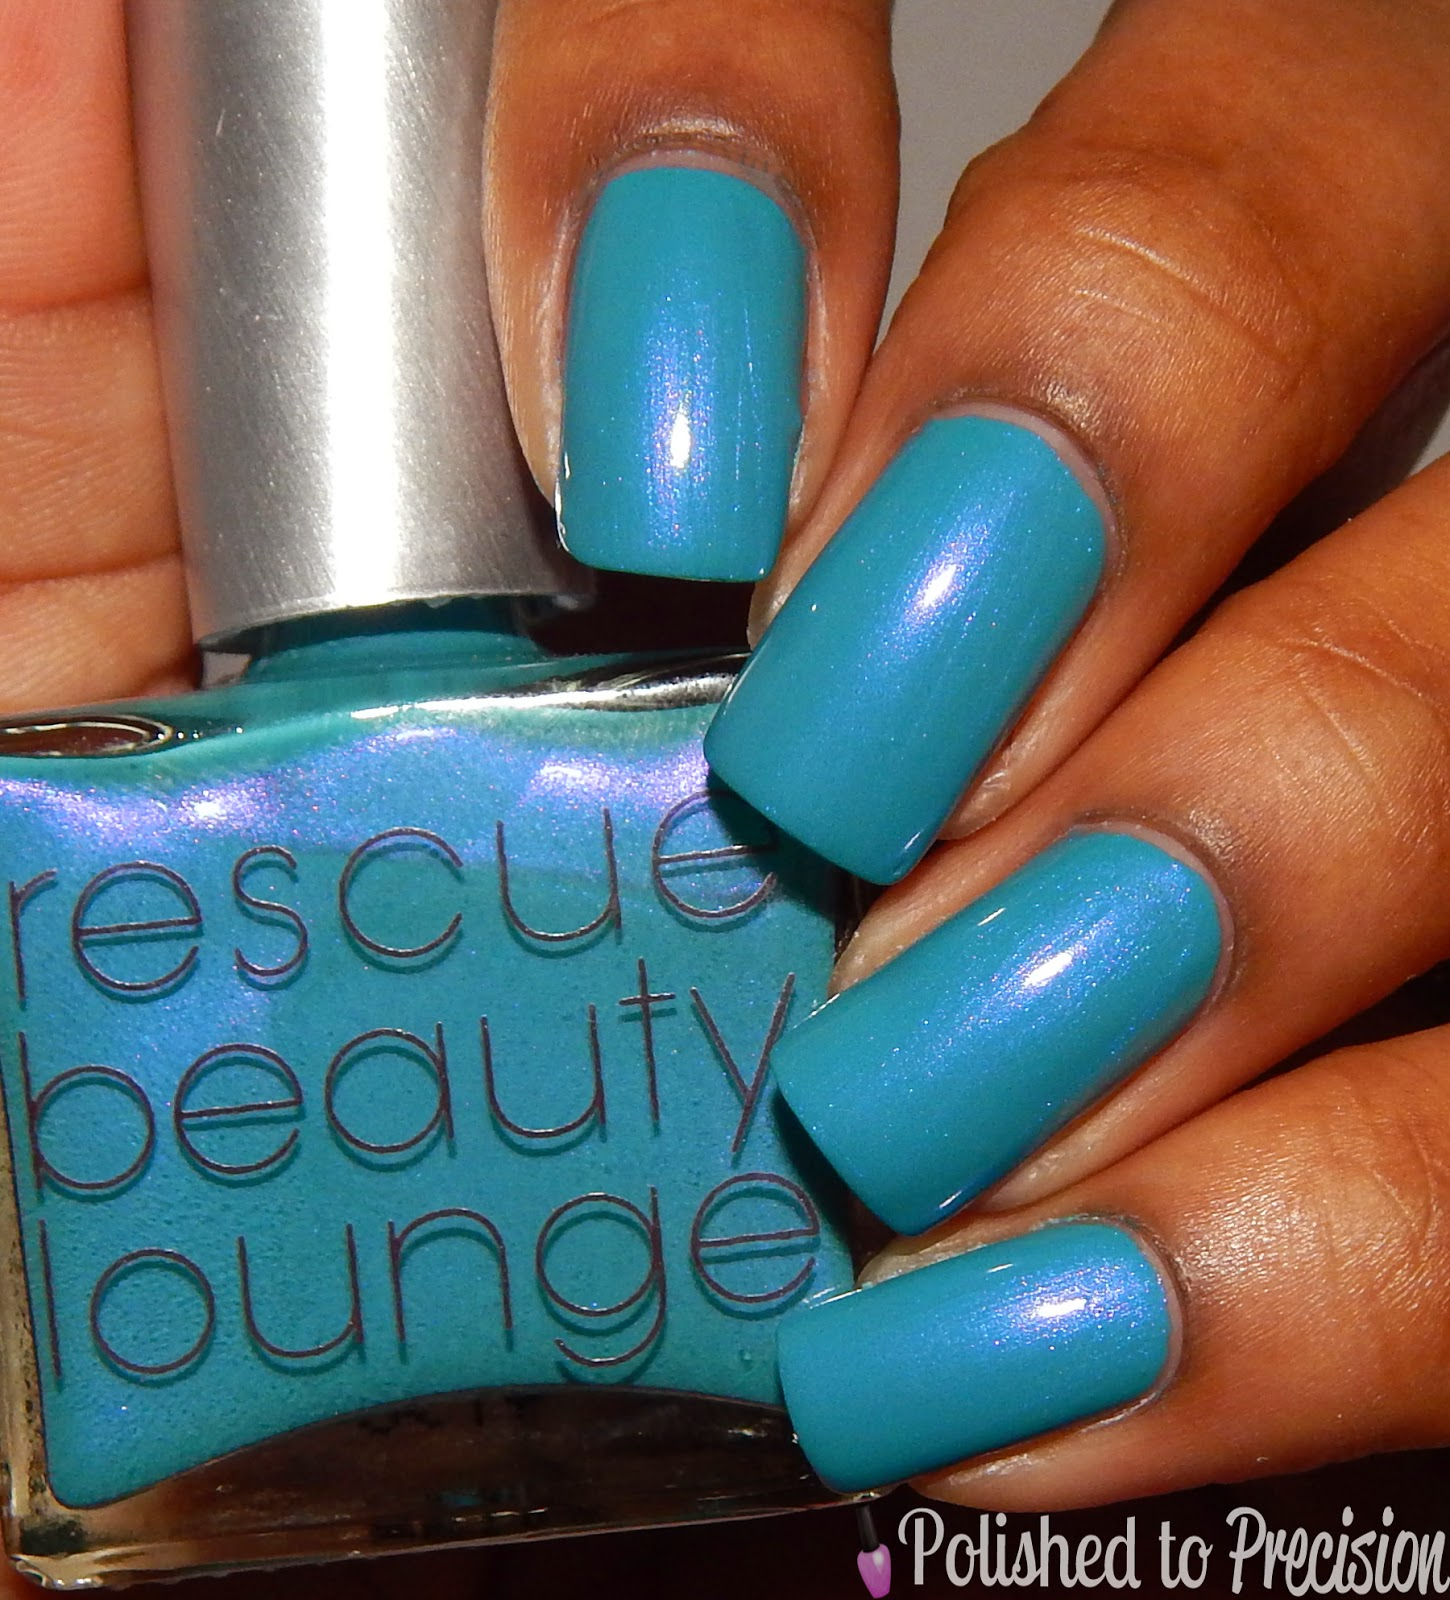 Rescue Beauty Lounge Motorini